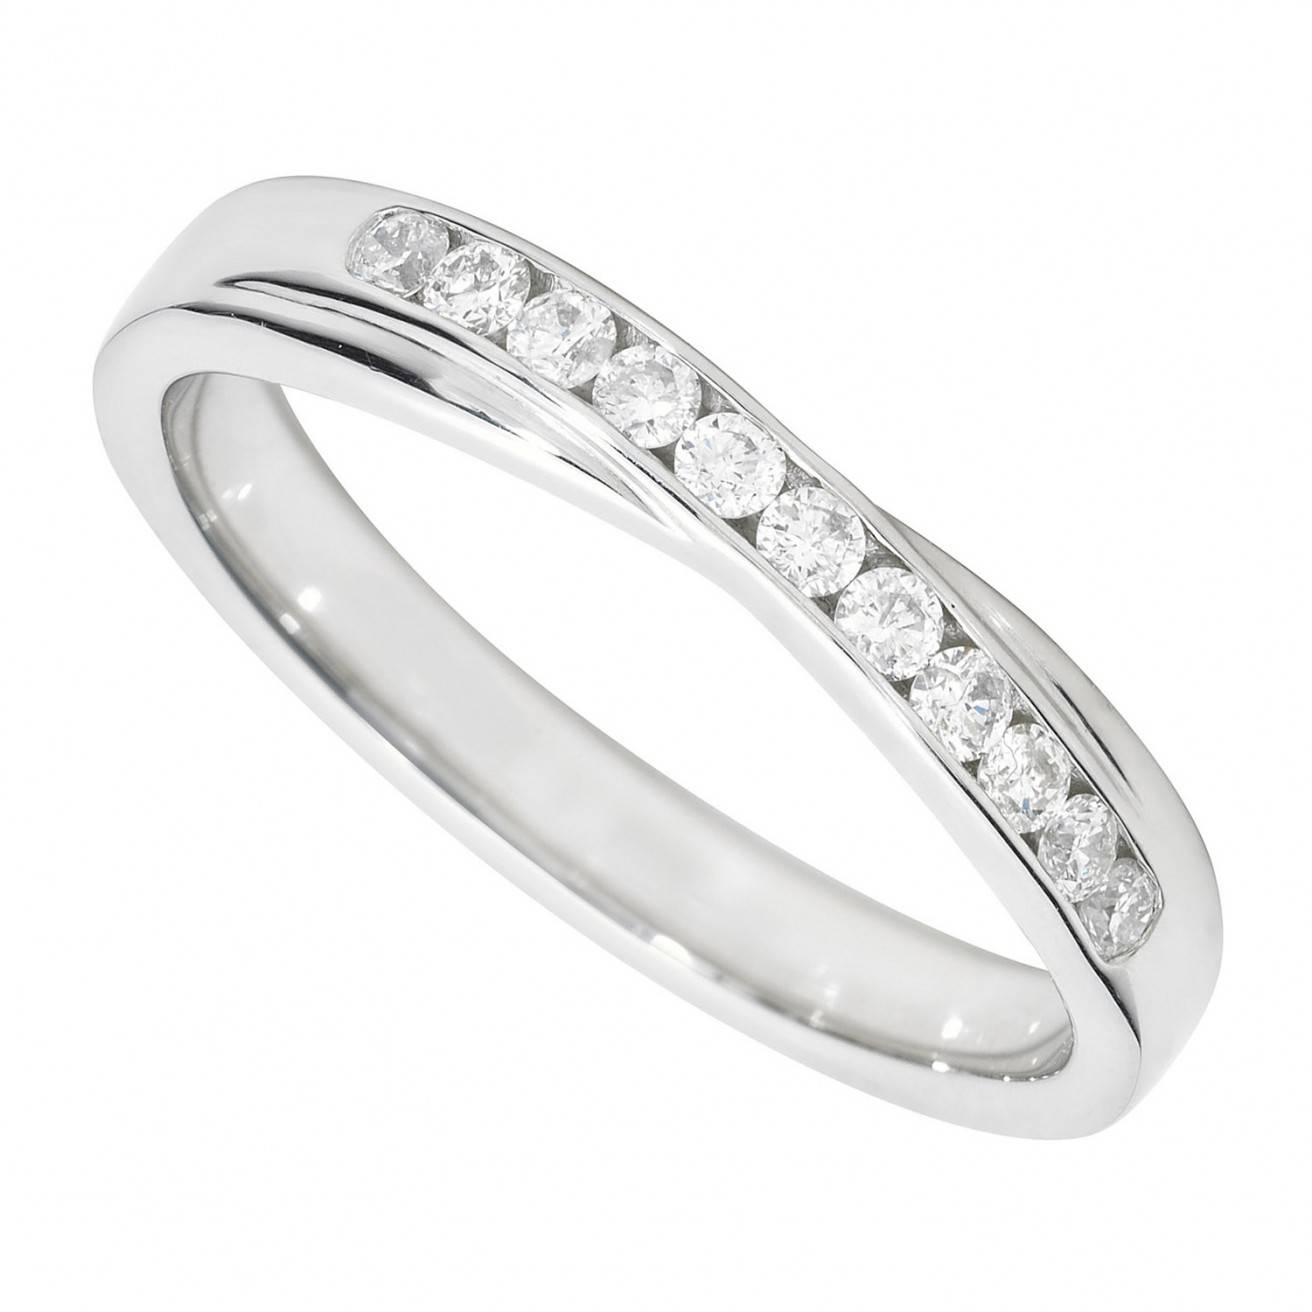 Buy Platinum Wedding Bands Online – Fraser Hart Regarding Platinum Wedding Rings For Him (View 5 of 15)